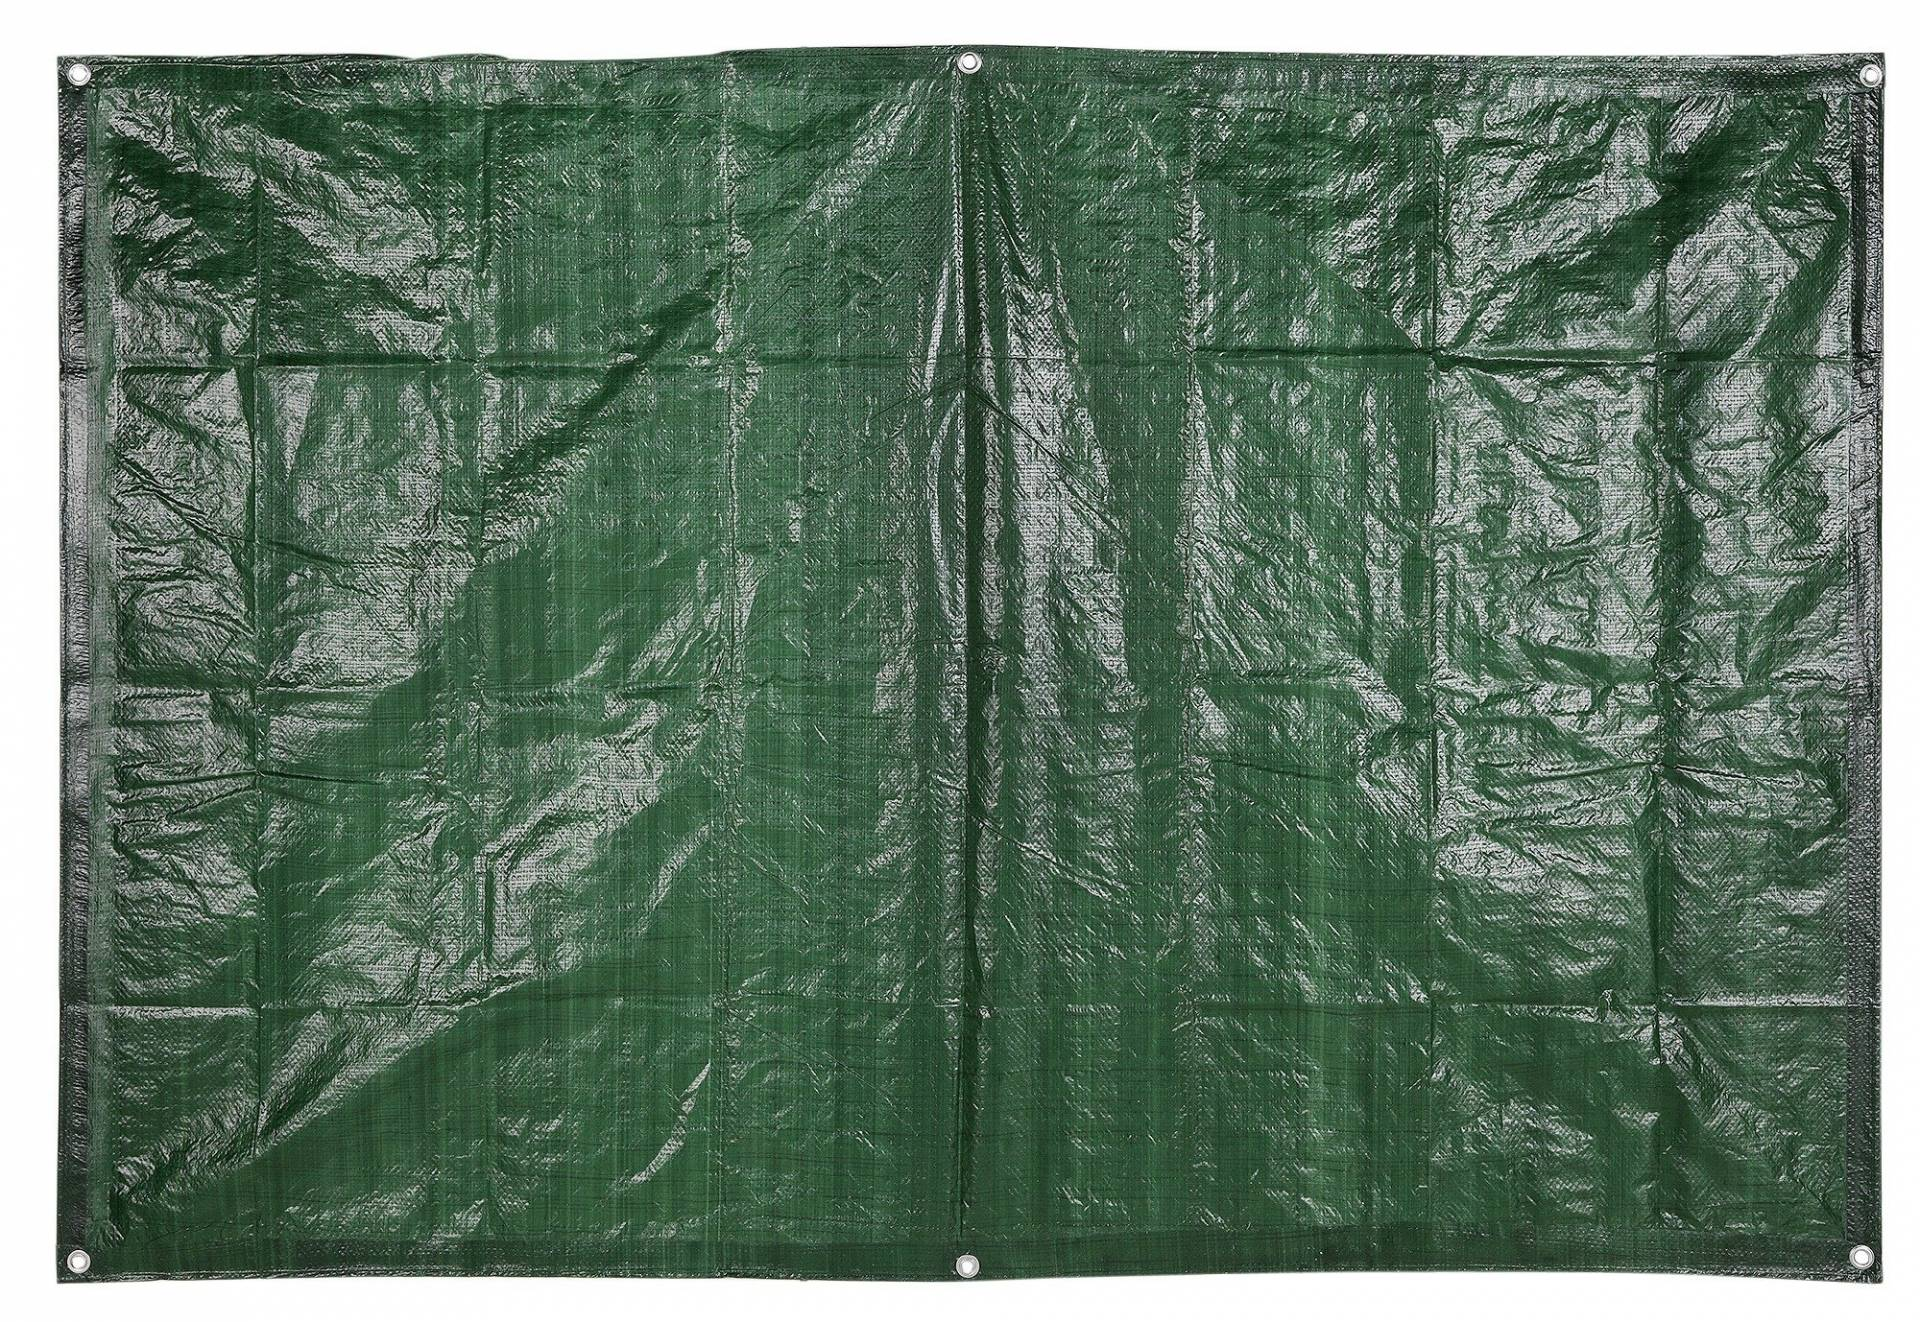 Highlander - Groundsheet 6ft x 4ft from highlander